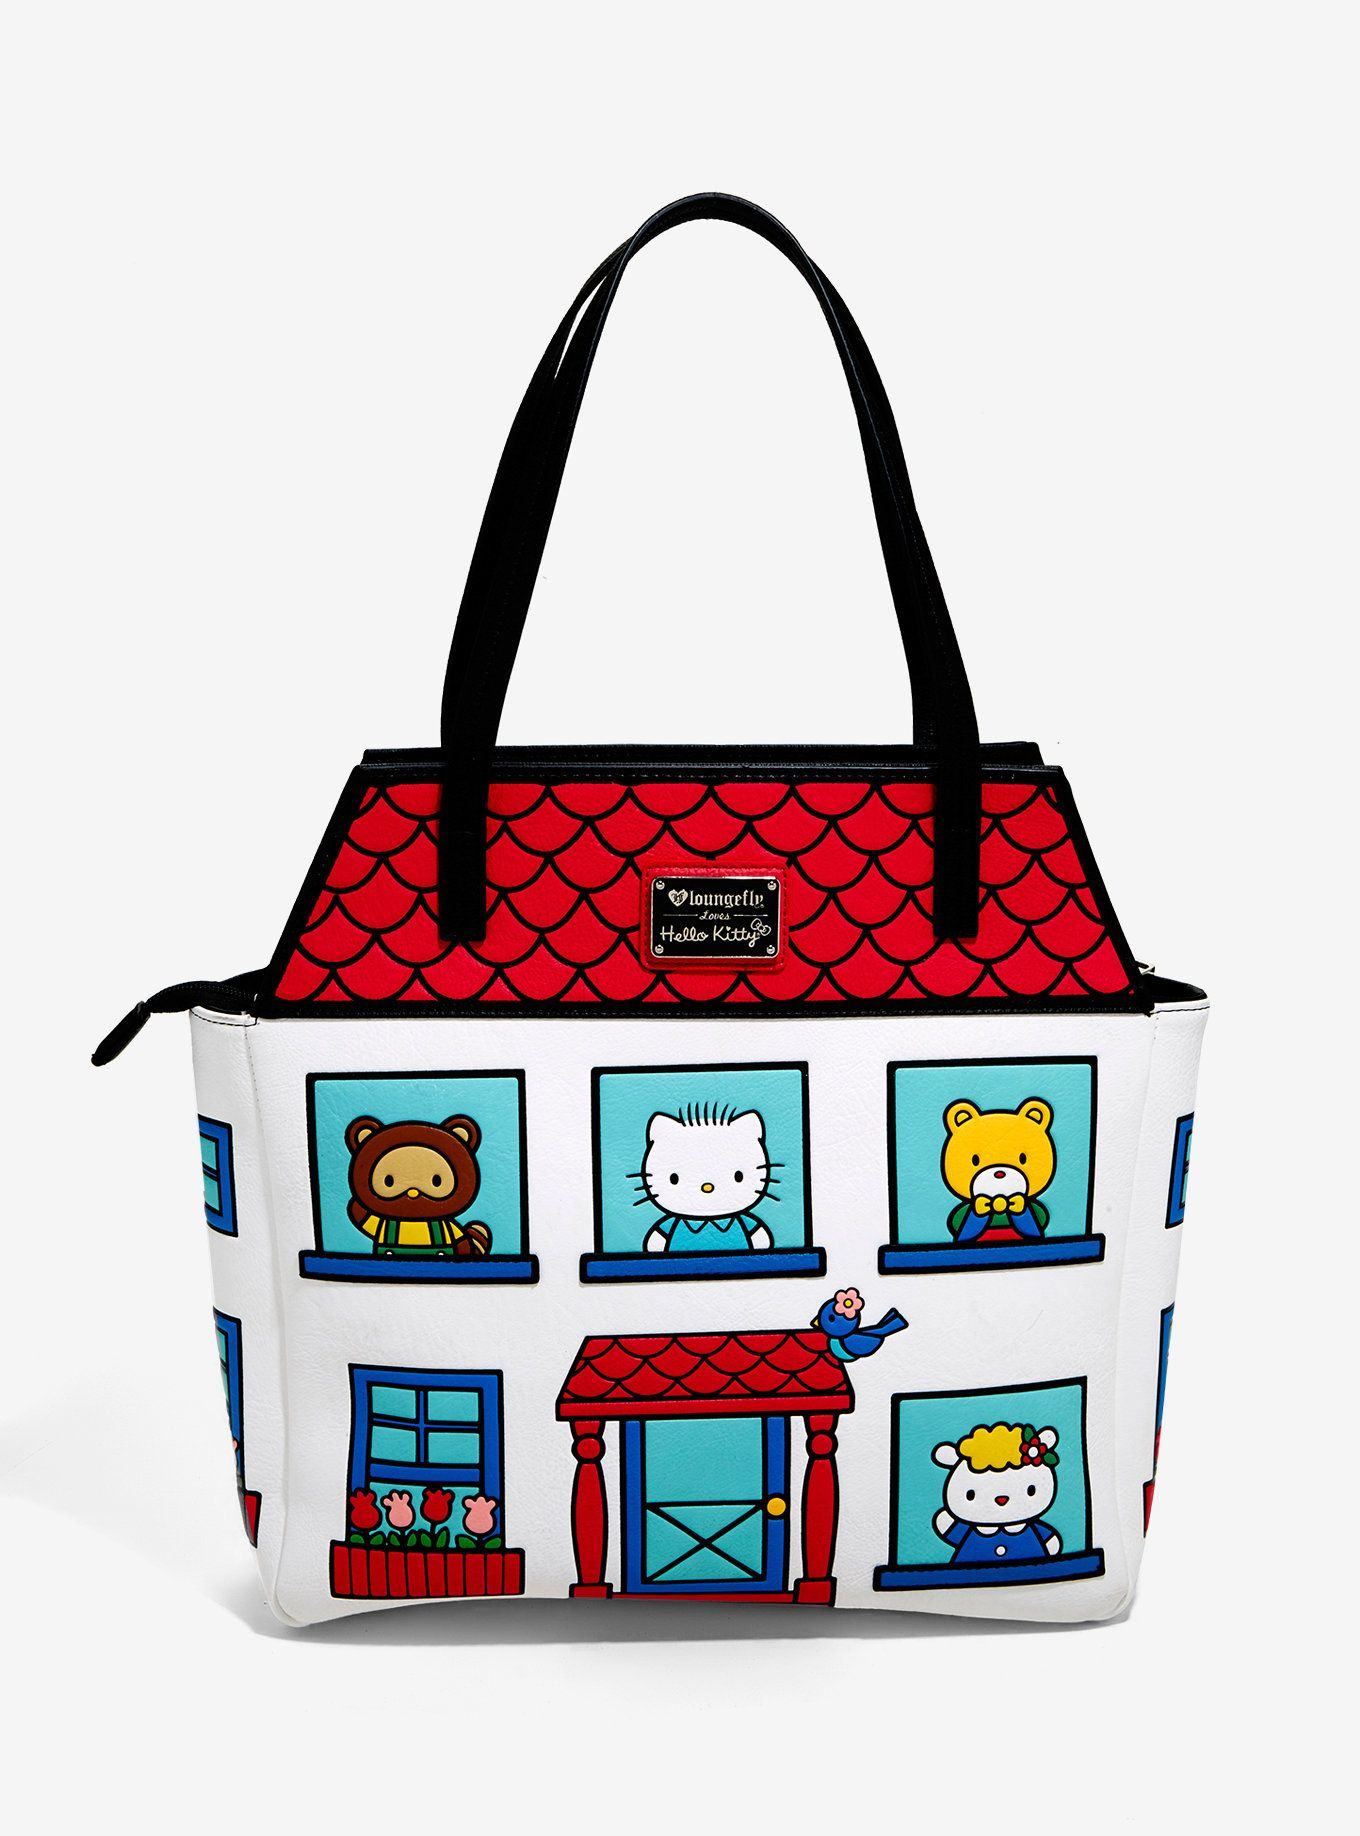 6694df100 Never leave the house without your favorite kitty! This white purse  features Hello Kitty's house and her family! Interior Hello Kitty lining  and interior ...